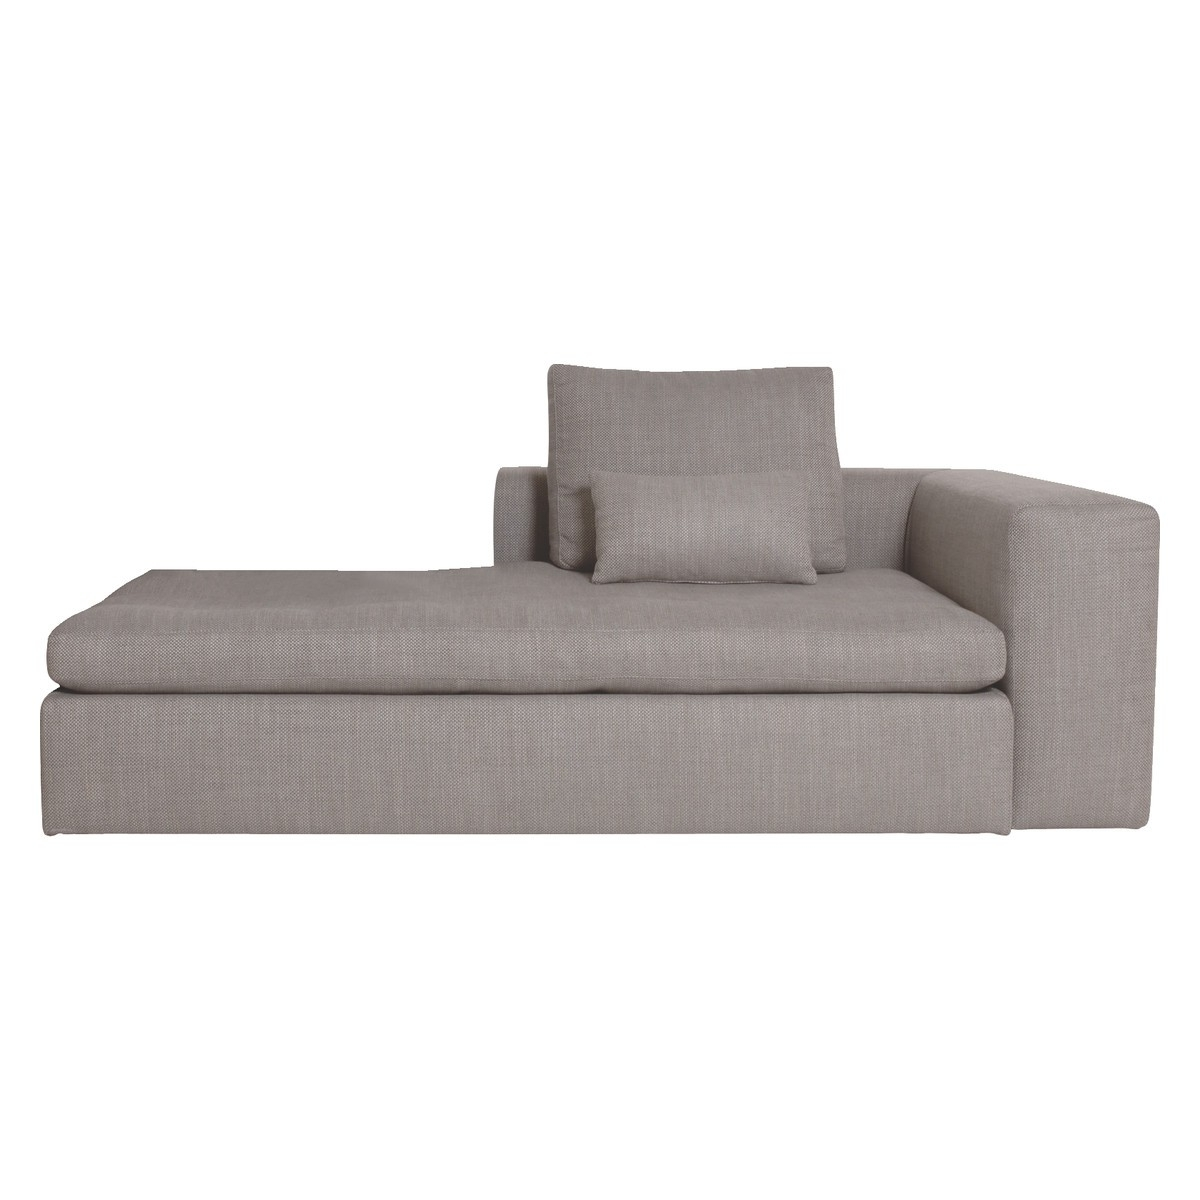 Widely Used Chaise Beds Intended For Sofas: Classic Meets Contemporary Chaise Sofa Bed For Ideal Living (View 6 of 15)